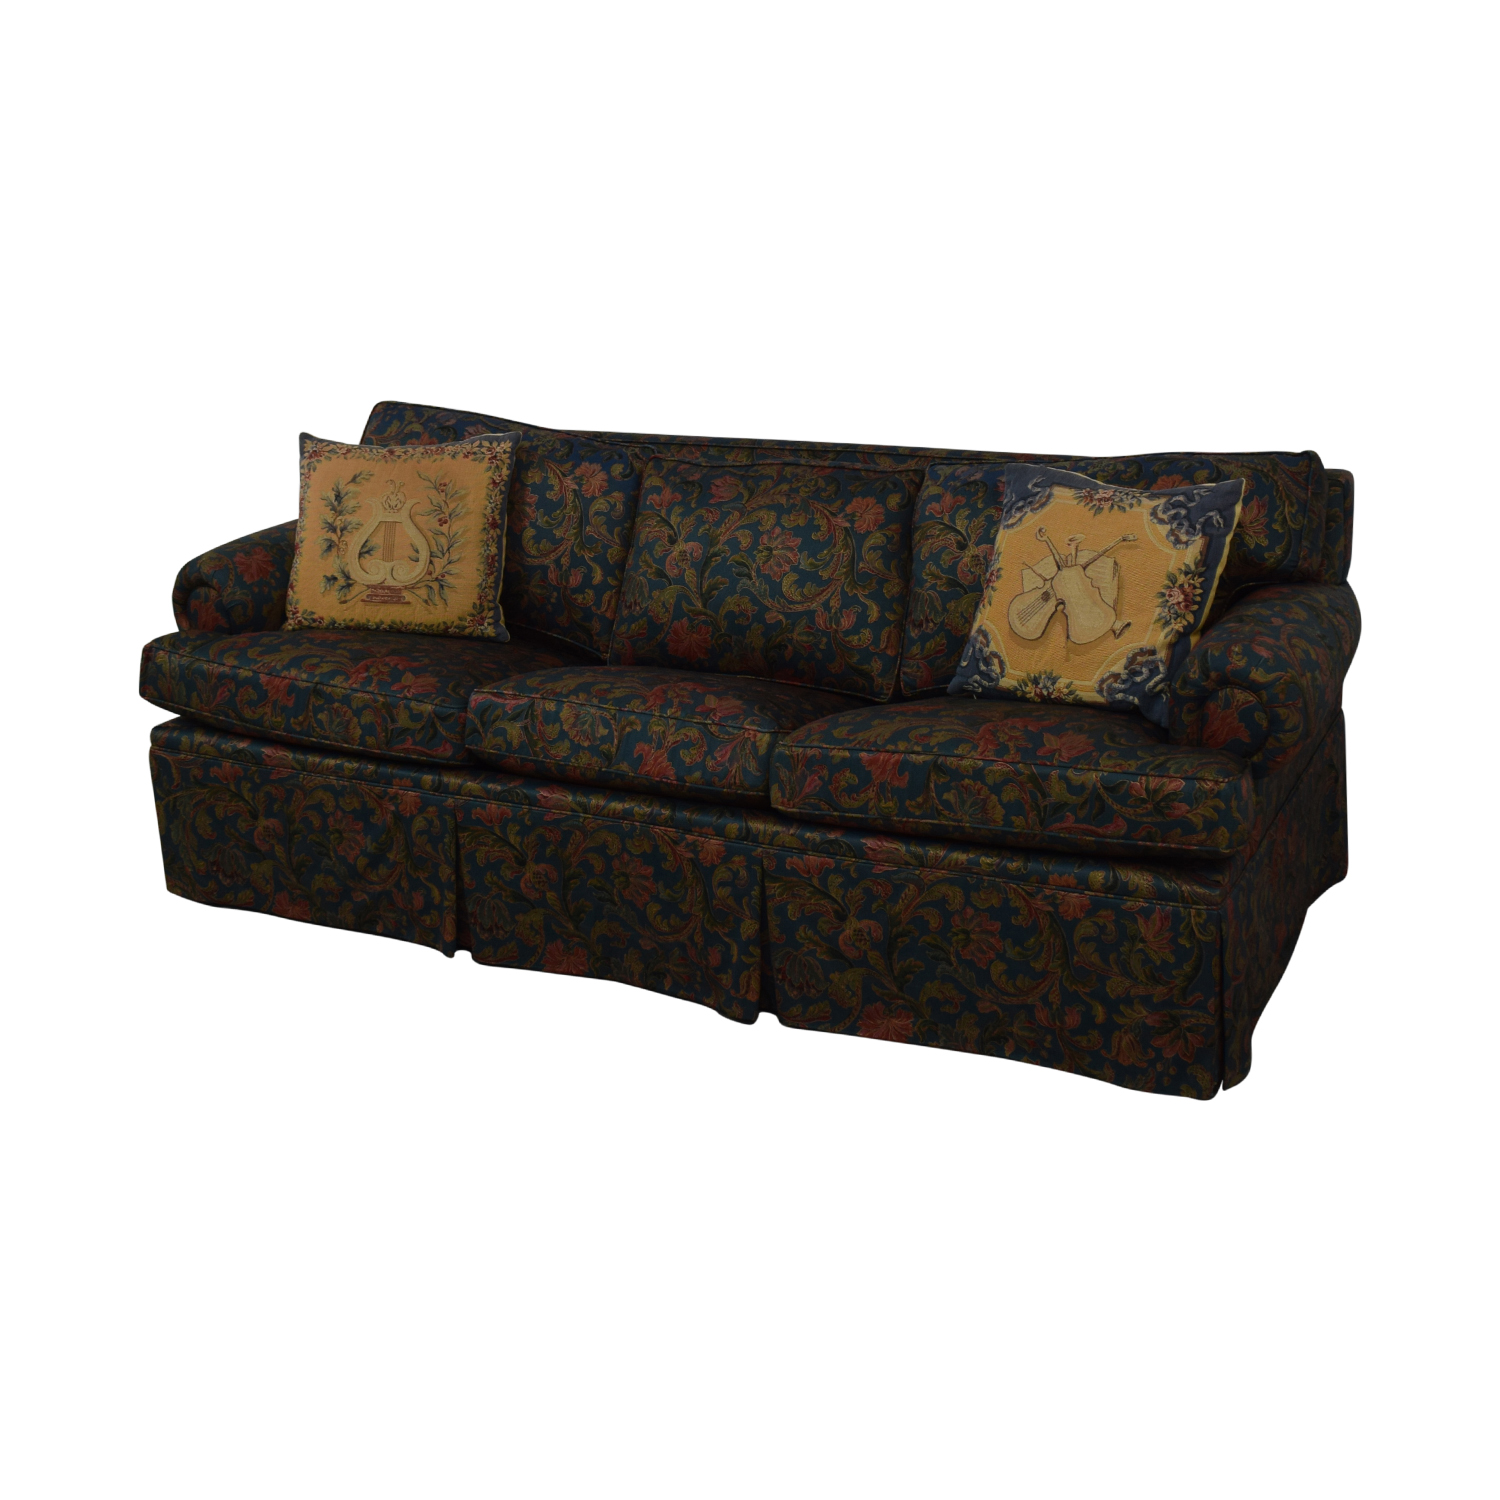 Carlyle Carlyle Queen Sleeper Sofa price